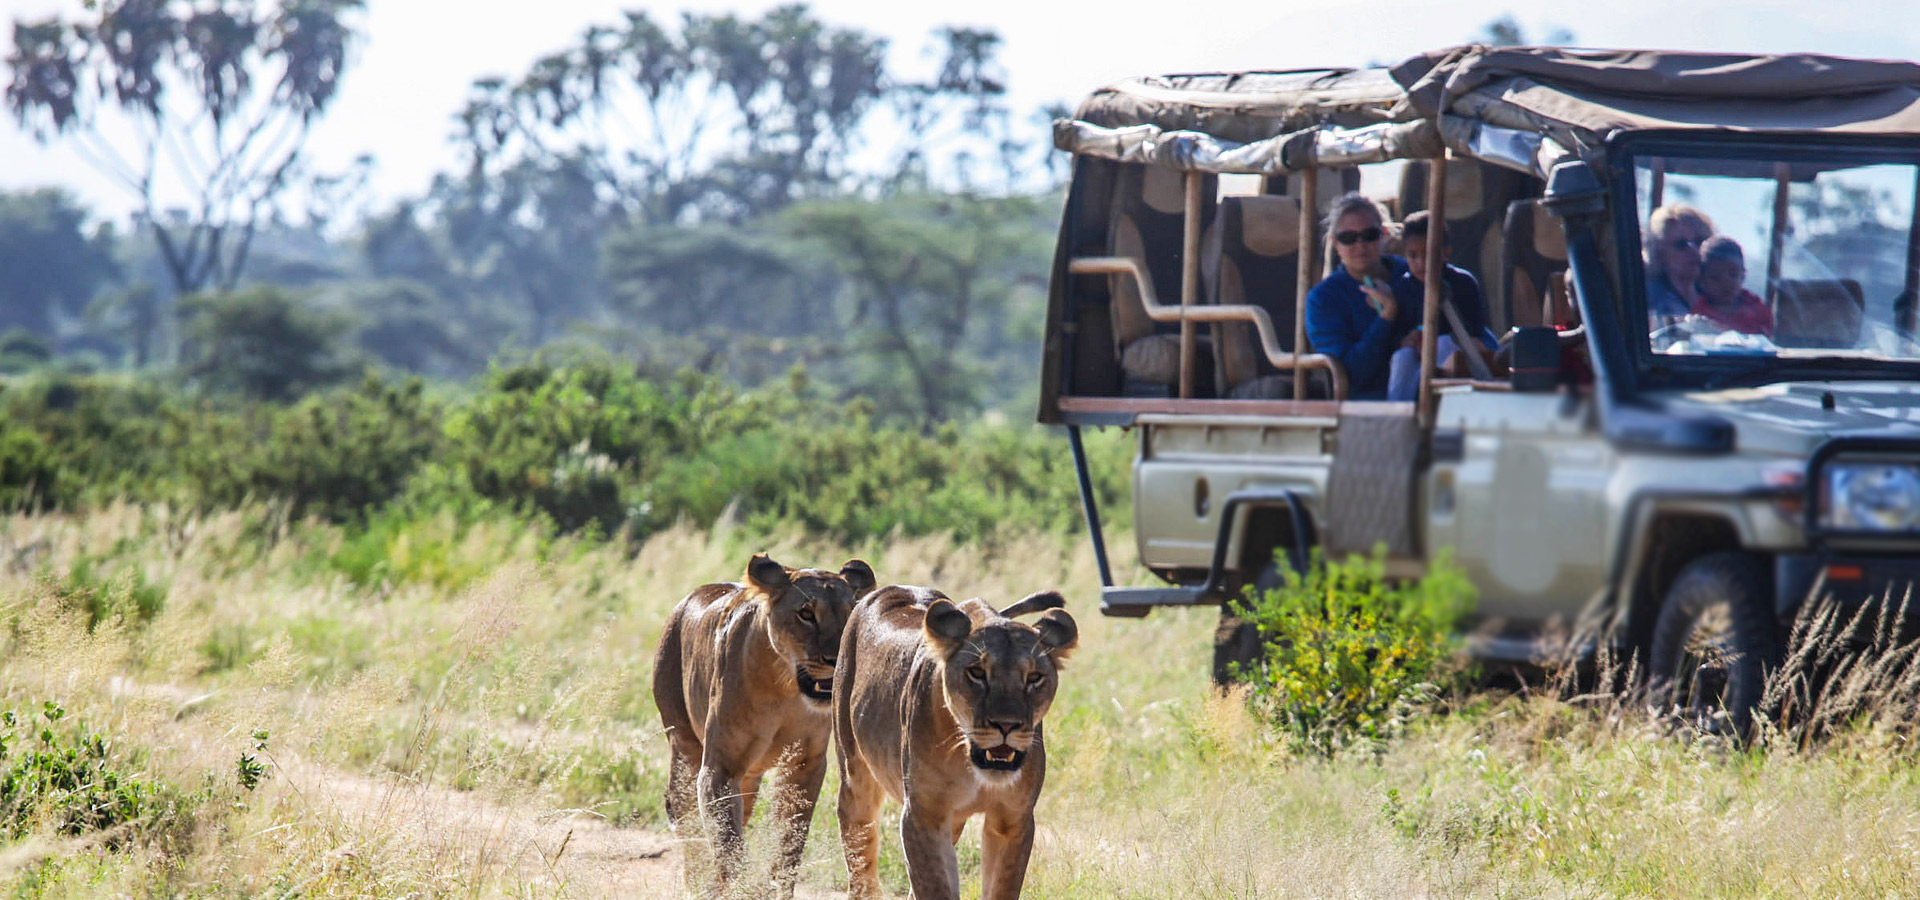 Know More About Kenya safari